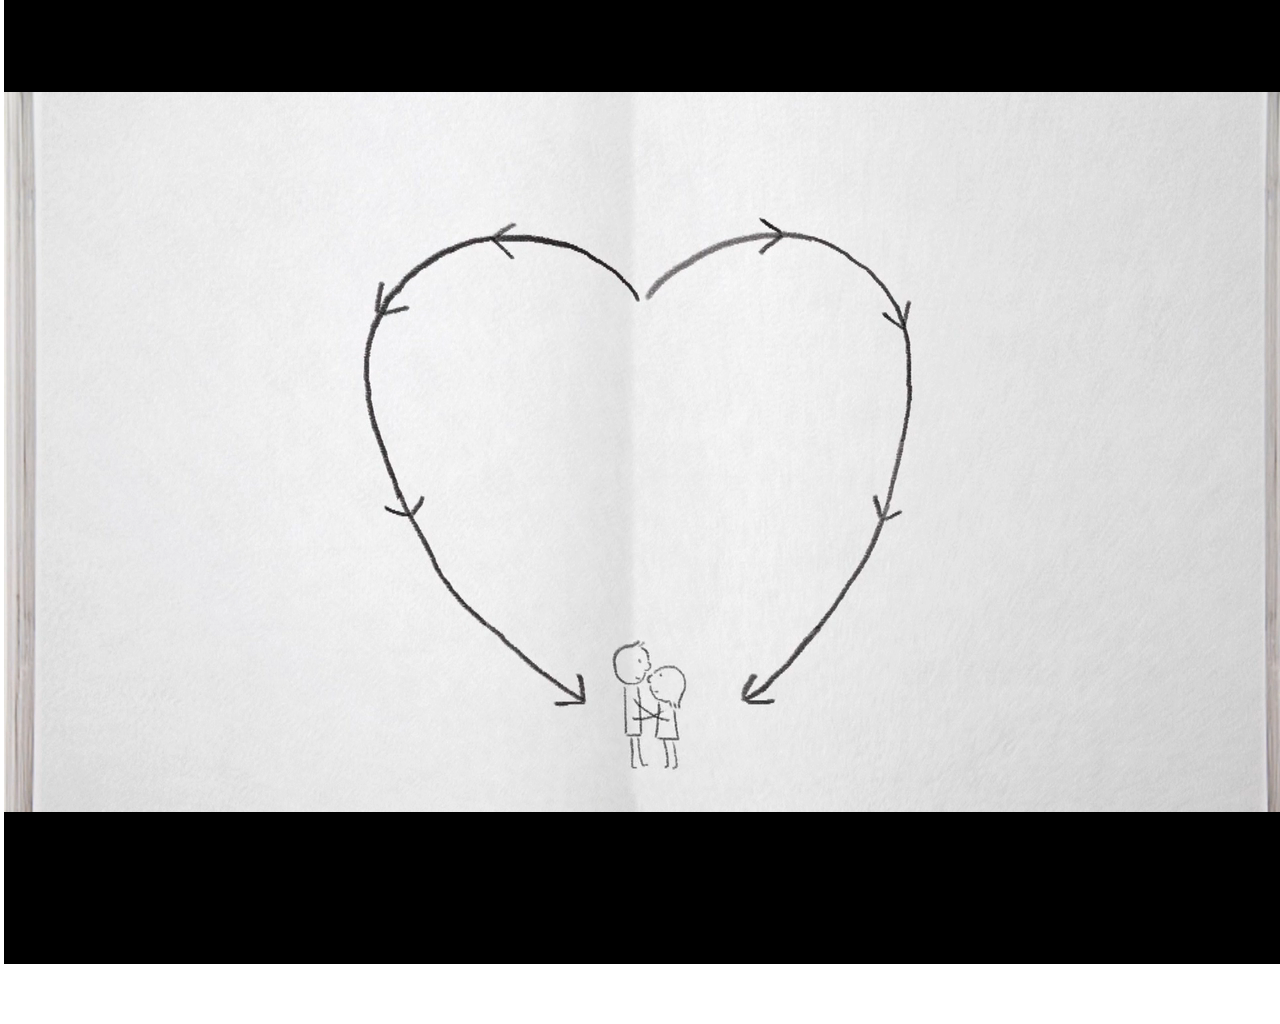 After I saw you: What if every love story was meant to be? (video)